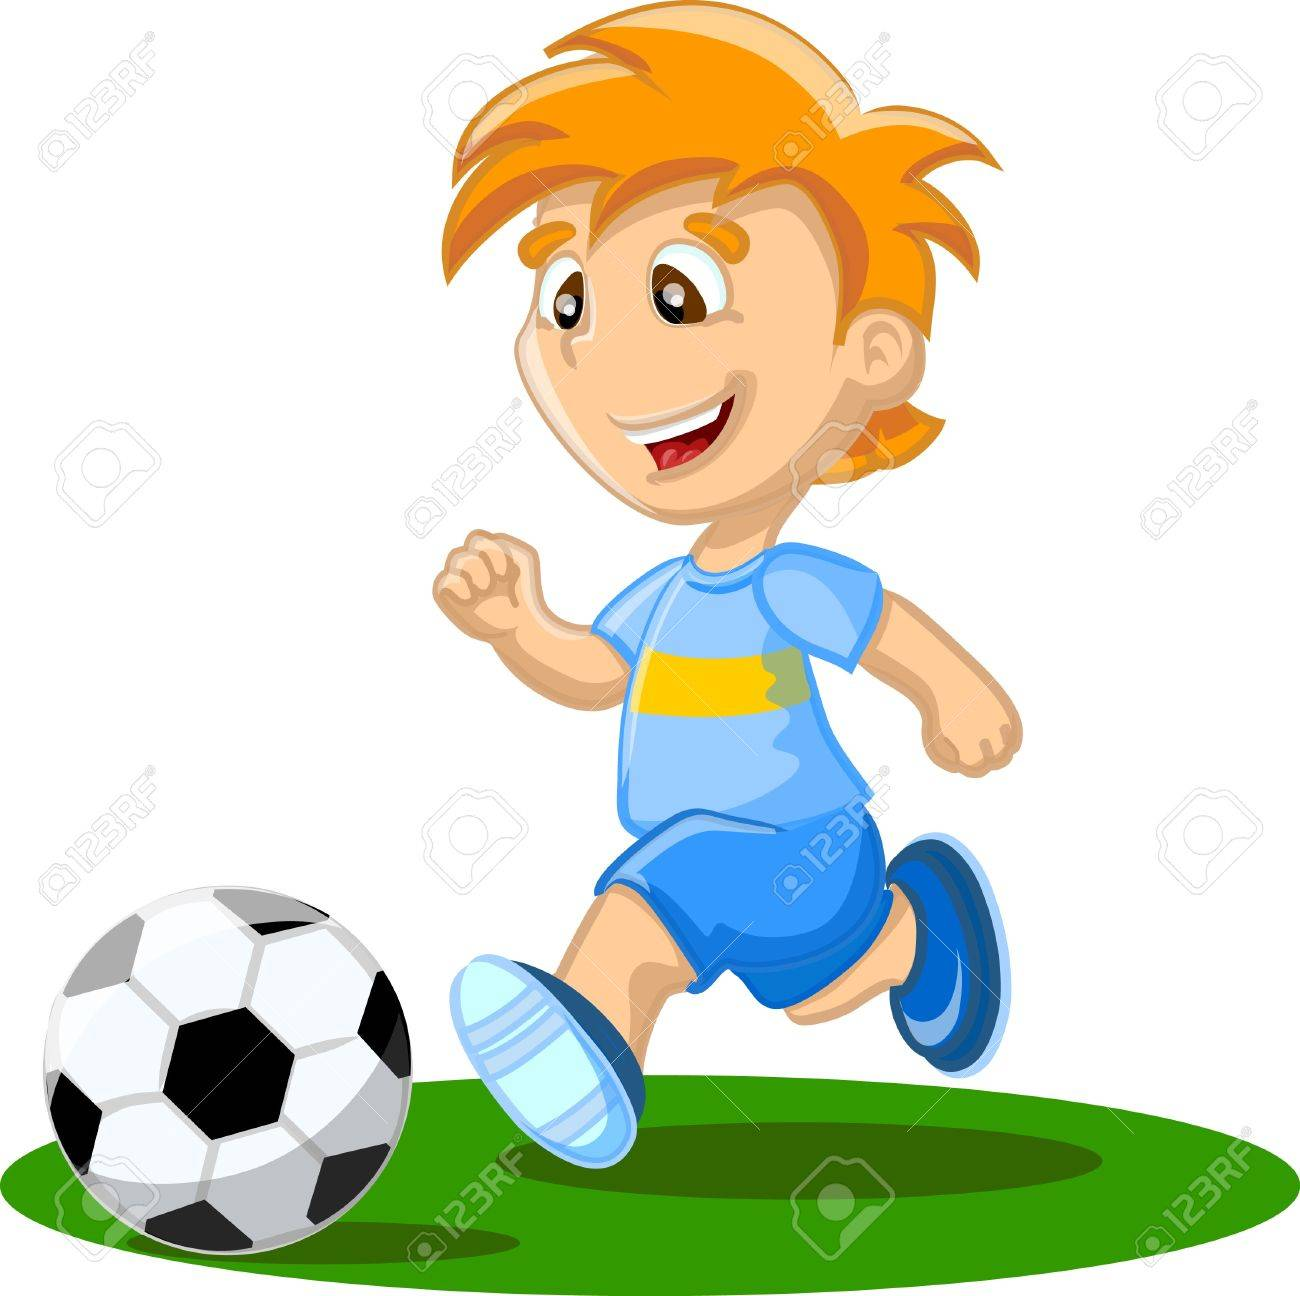 Boy is playing football, background Stock Vector - 17375452